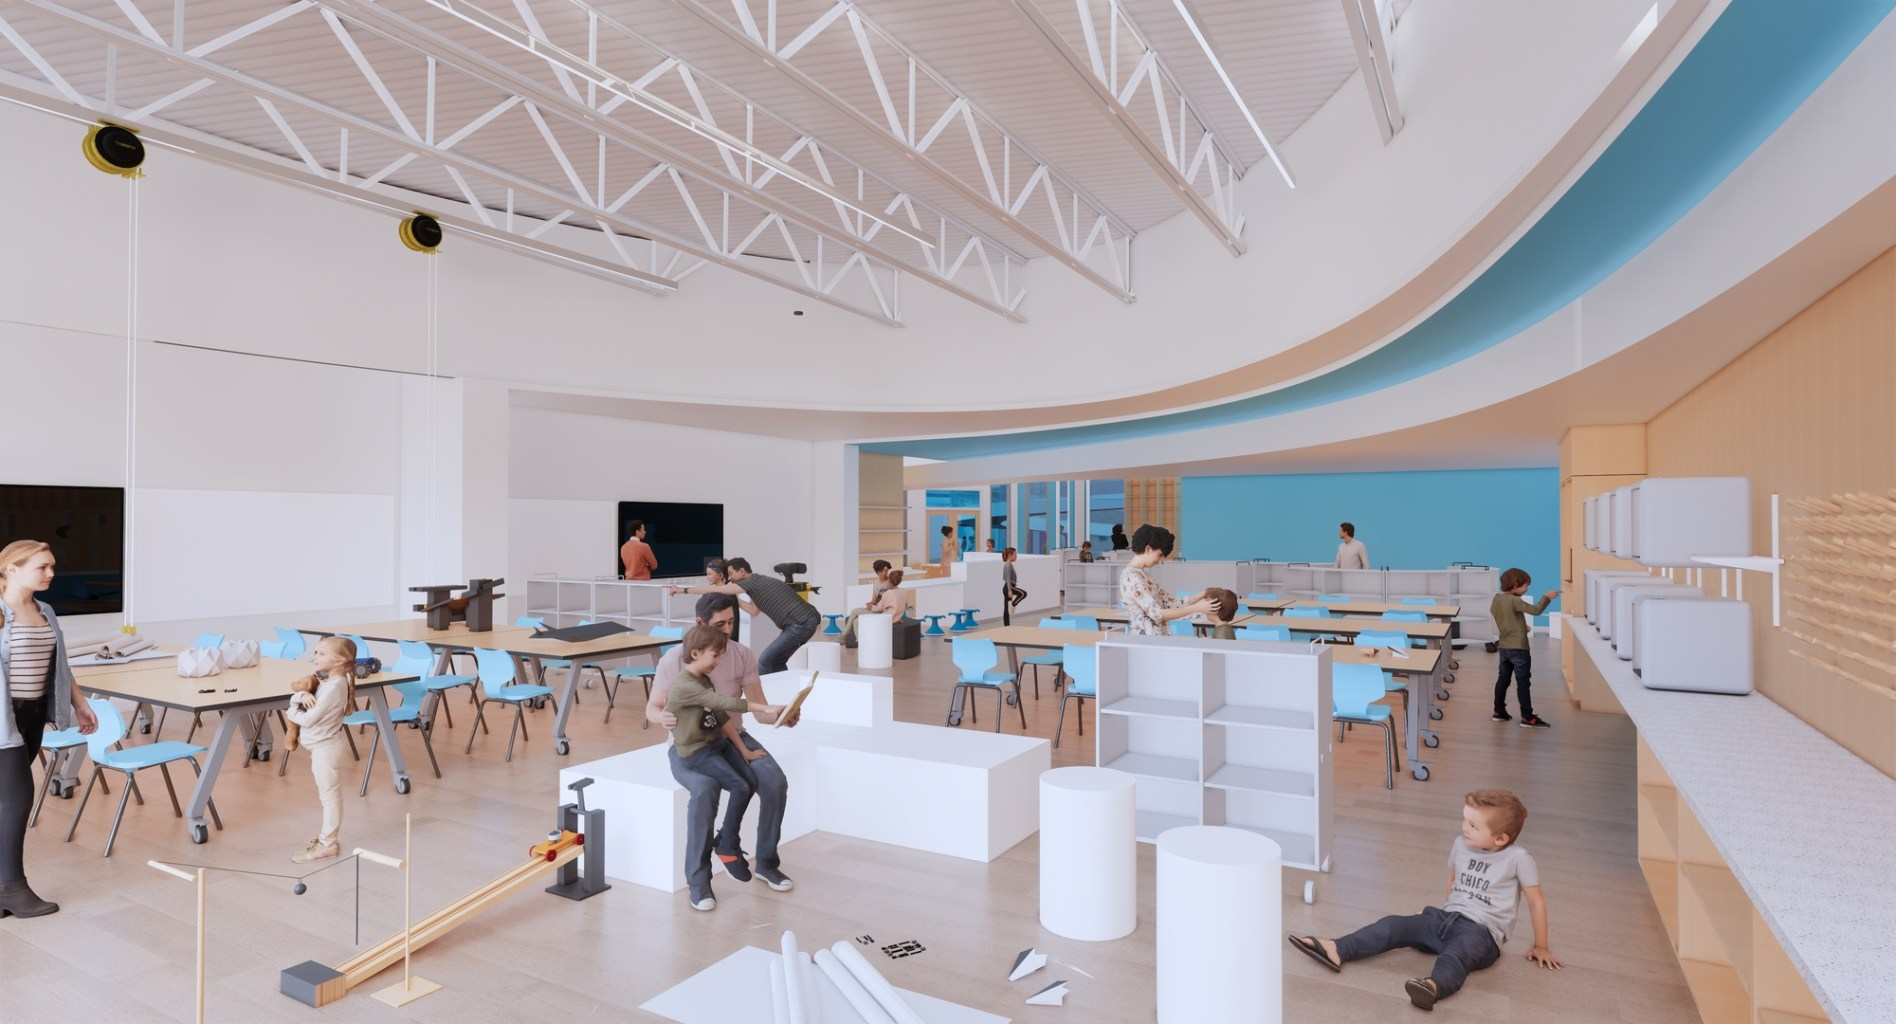 Rendering of a large, dynamic classroom setting